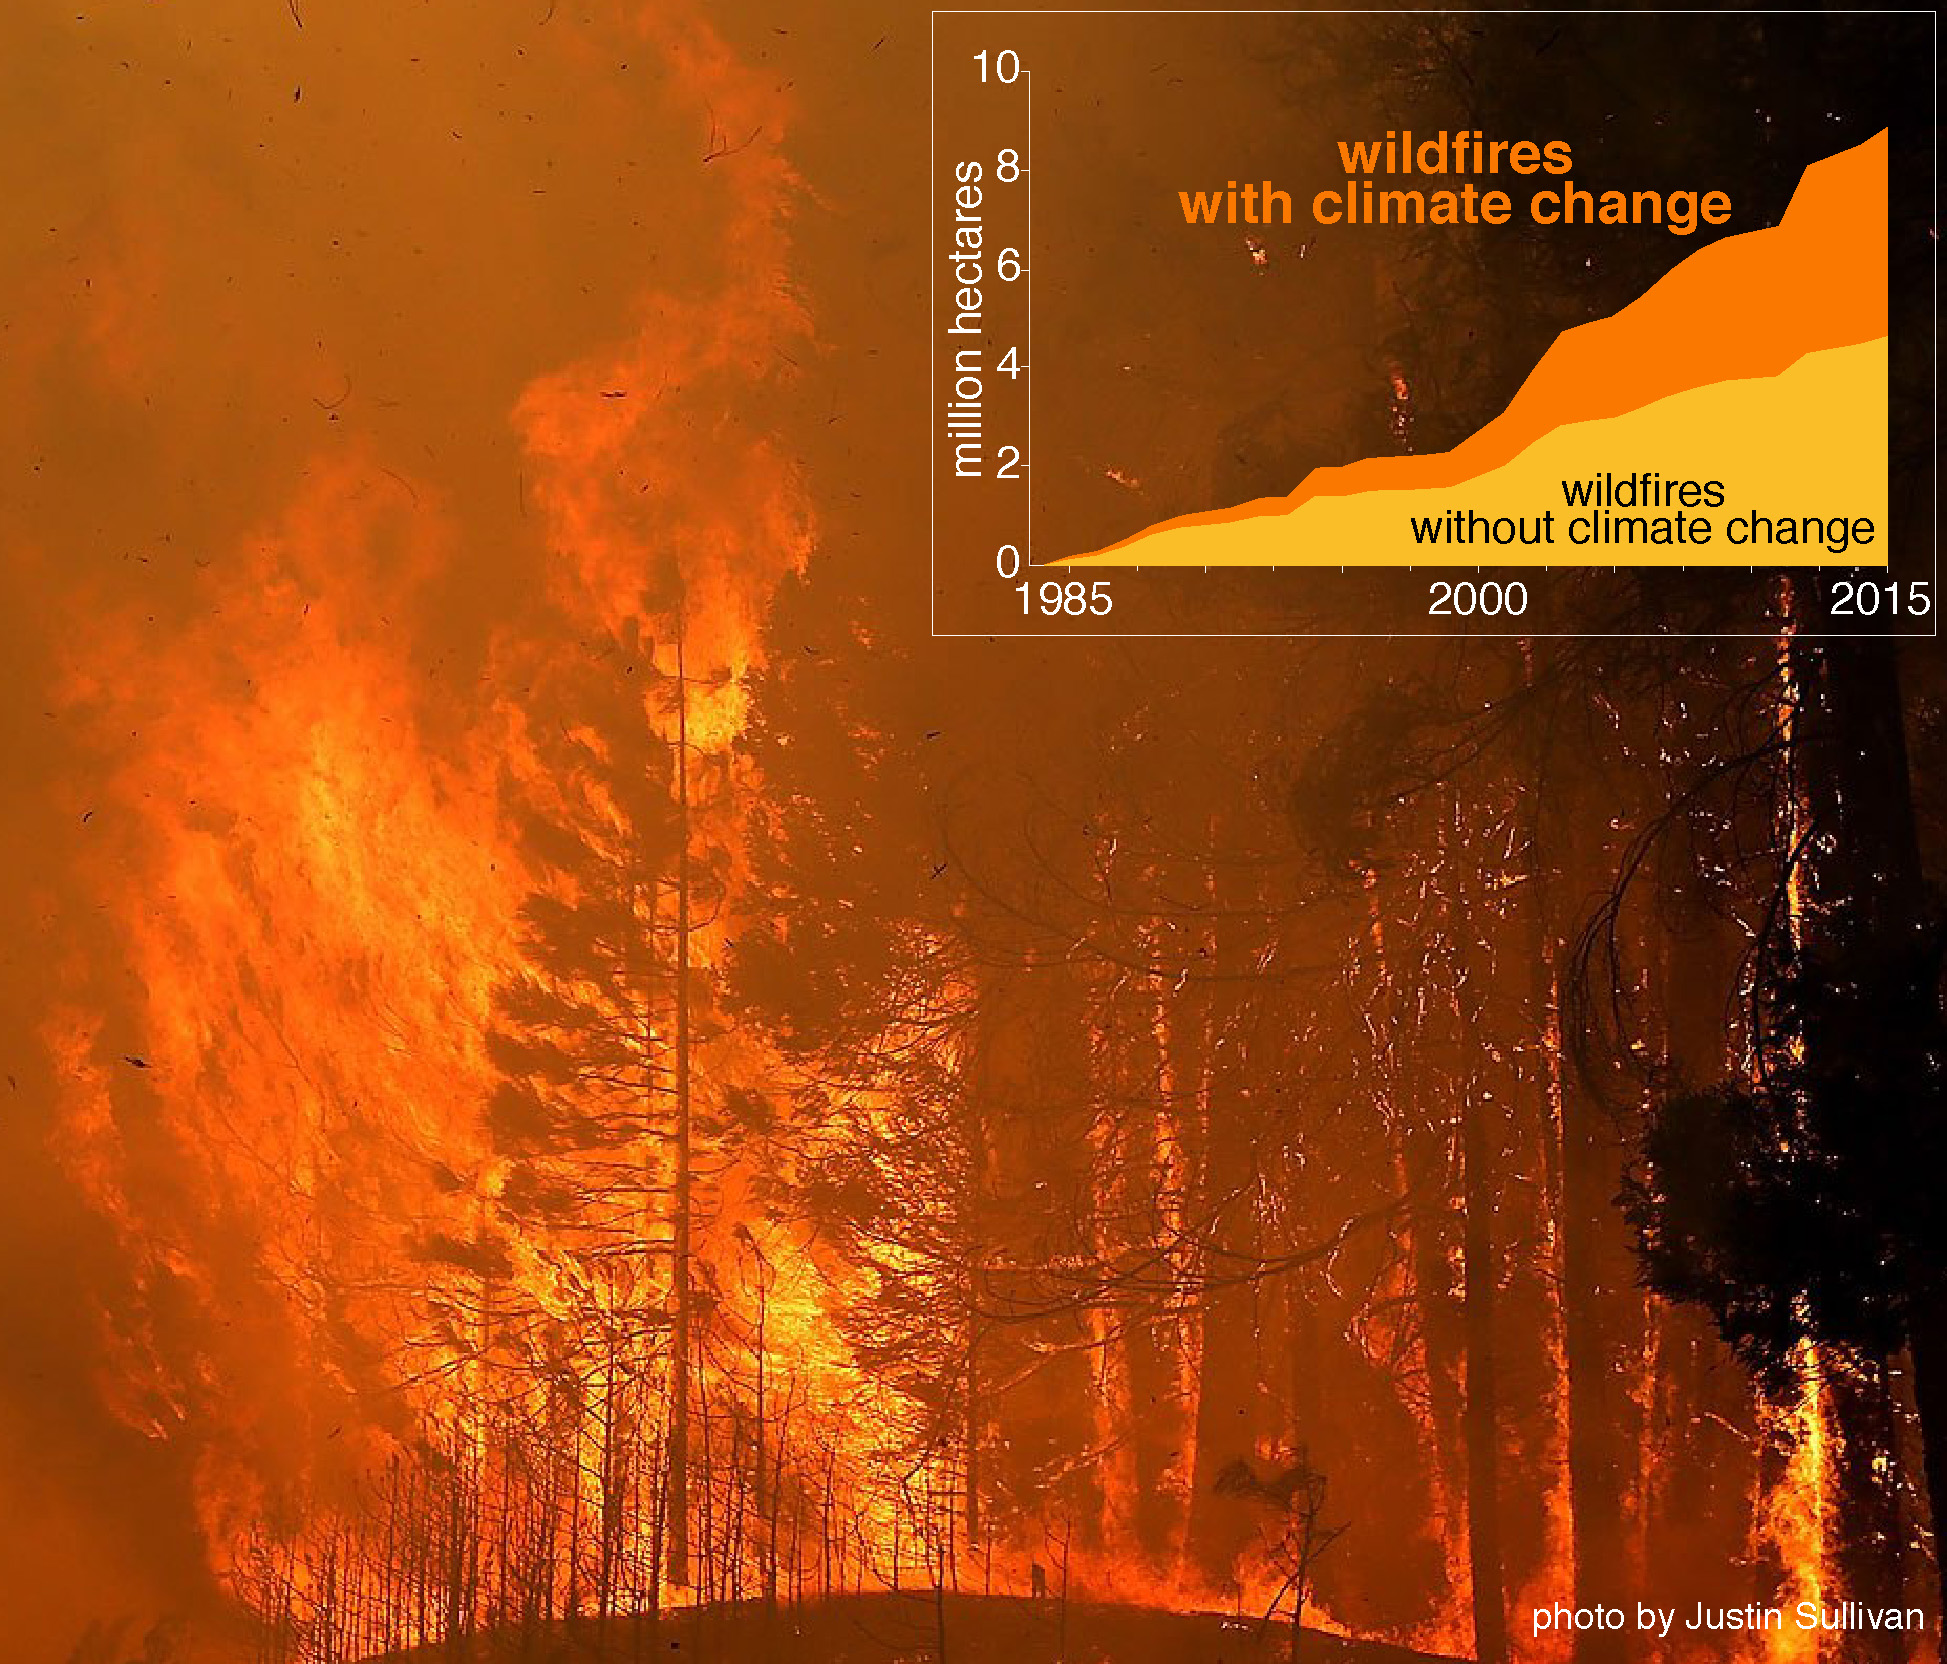 The rate of wildfires is increasing significantly due to climate chance